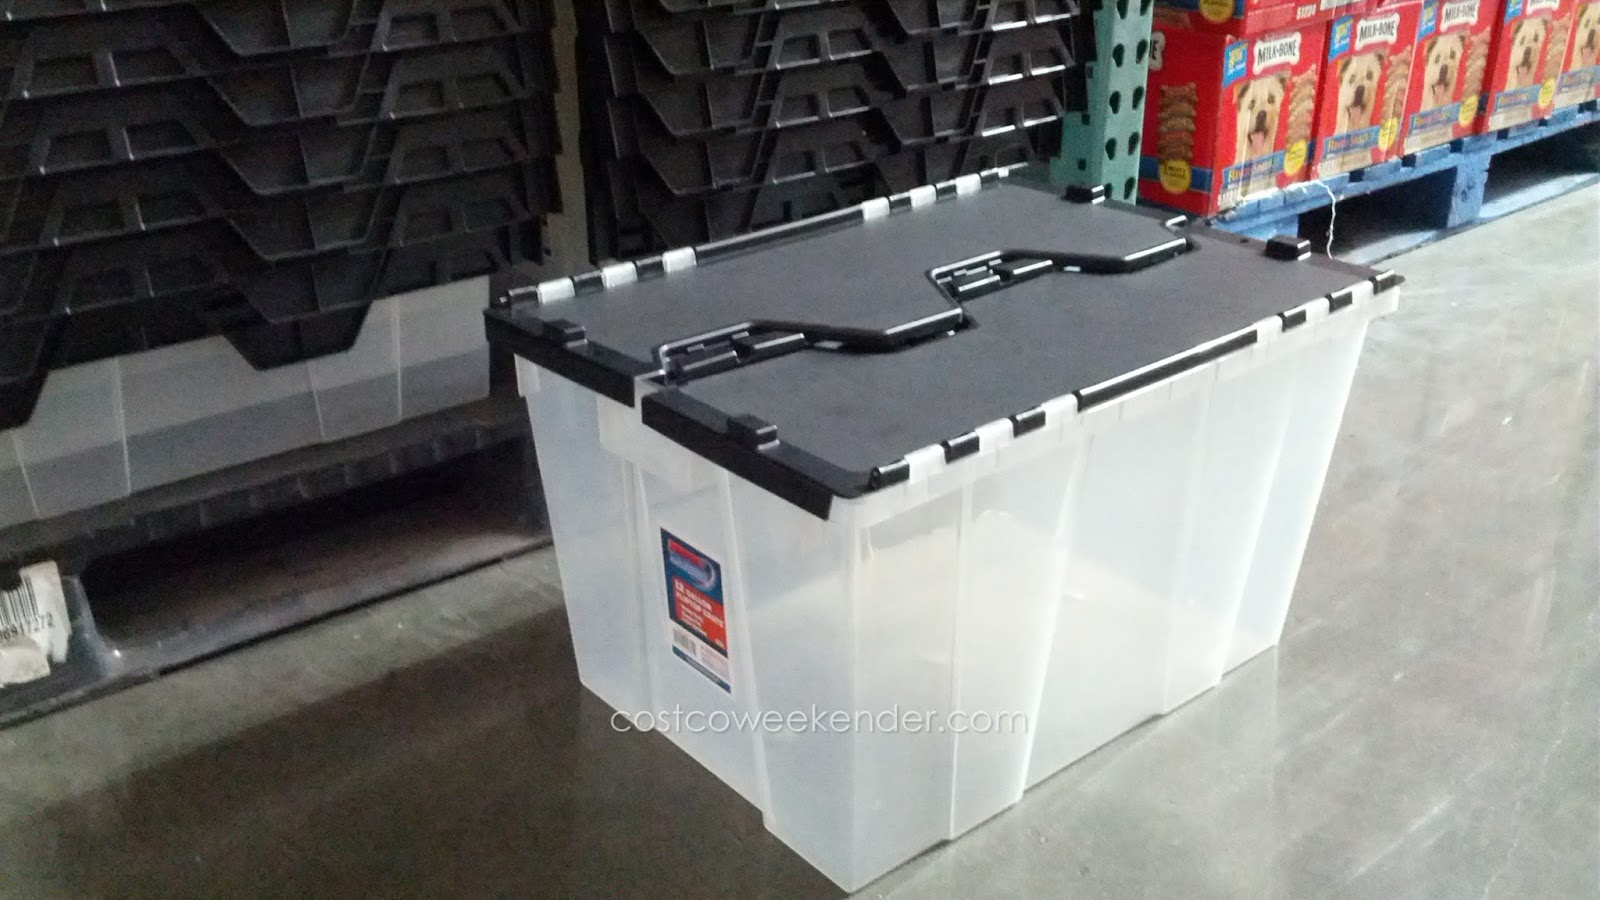 Incredible Solutions 12 Gallon Fliptop Crate Costco Weekender